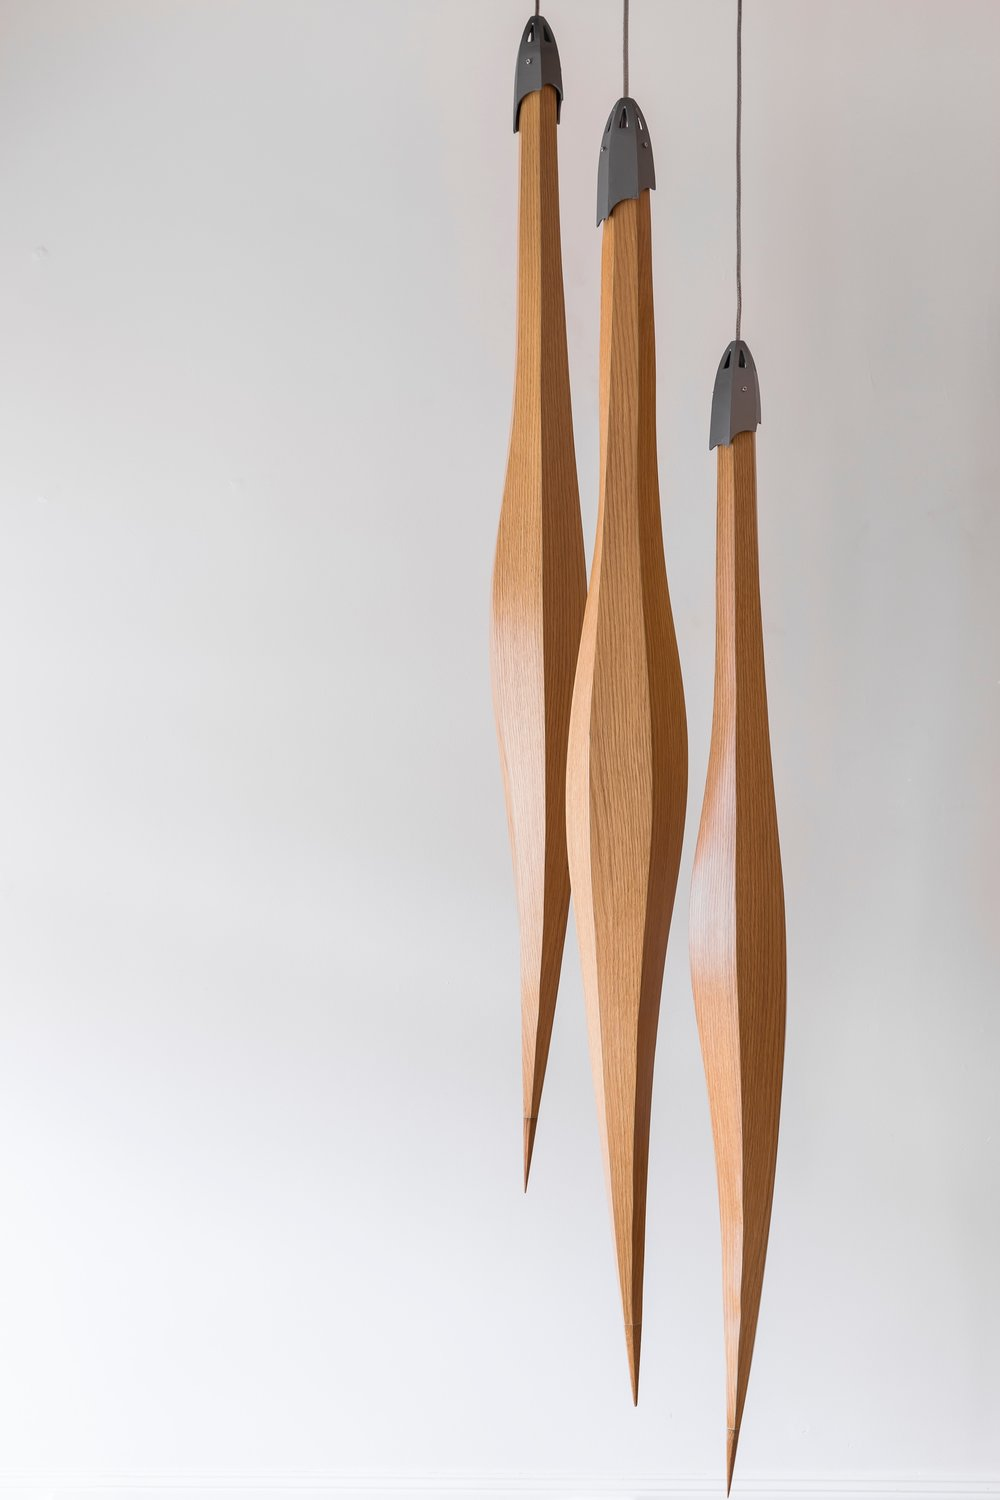 Harakeke Pods   Materials: Macrocarpa / Oak / Custom -aluminium castings Size - H 1800mm                        Light Source: High CRI LED strip  Please enquire for price  Handcrafted in New Zealand.